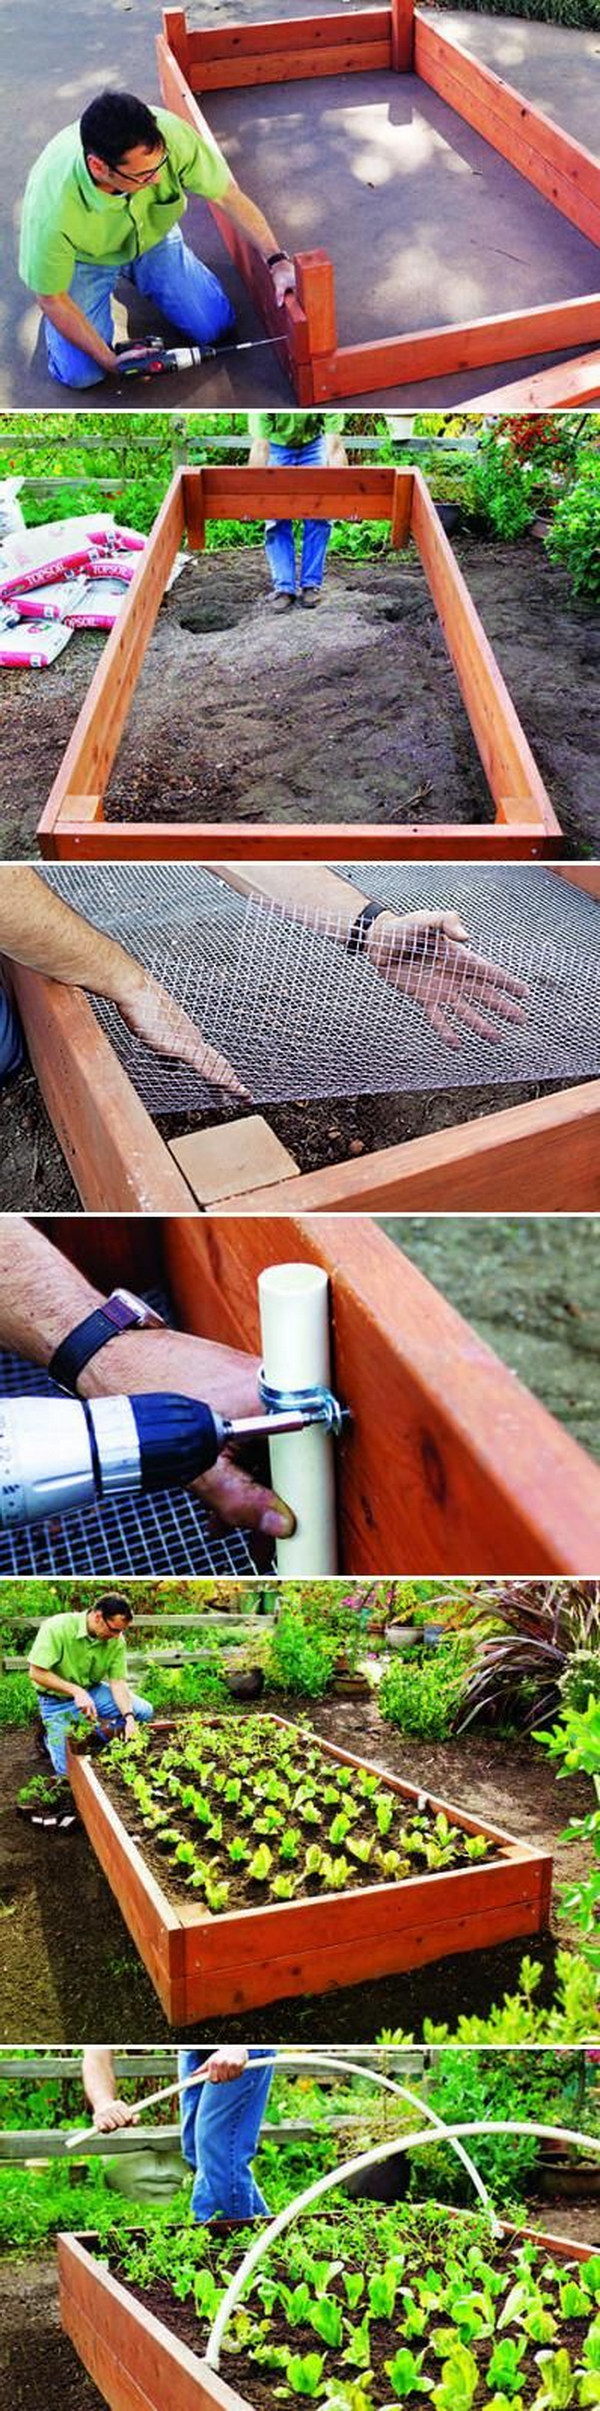 How To Build A Simple Cedar Raise Garden Bed.